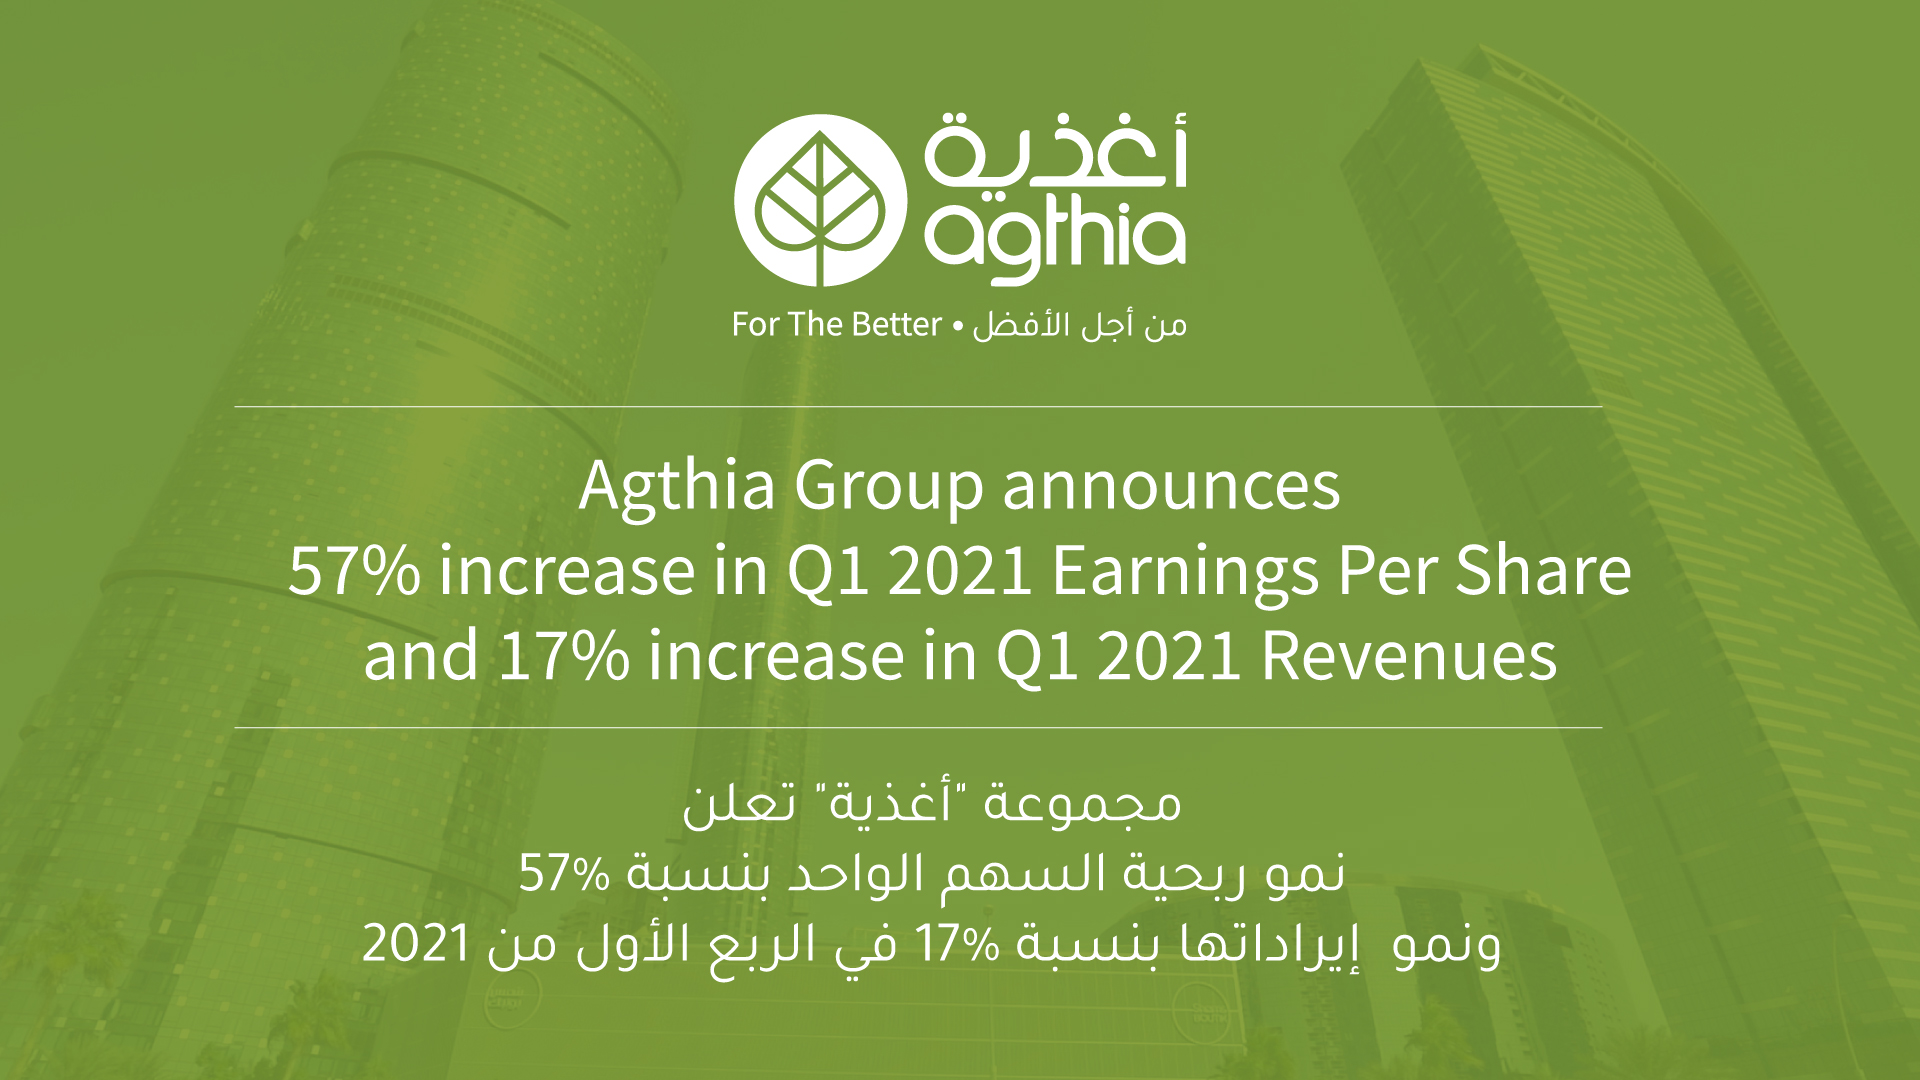 Agthia Group Announces 57% increase in Q1 2021 Earnings Per Share and 17% Increase in Q1 2021 Revenues